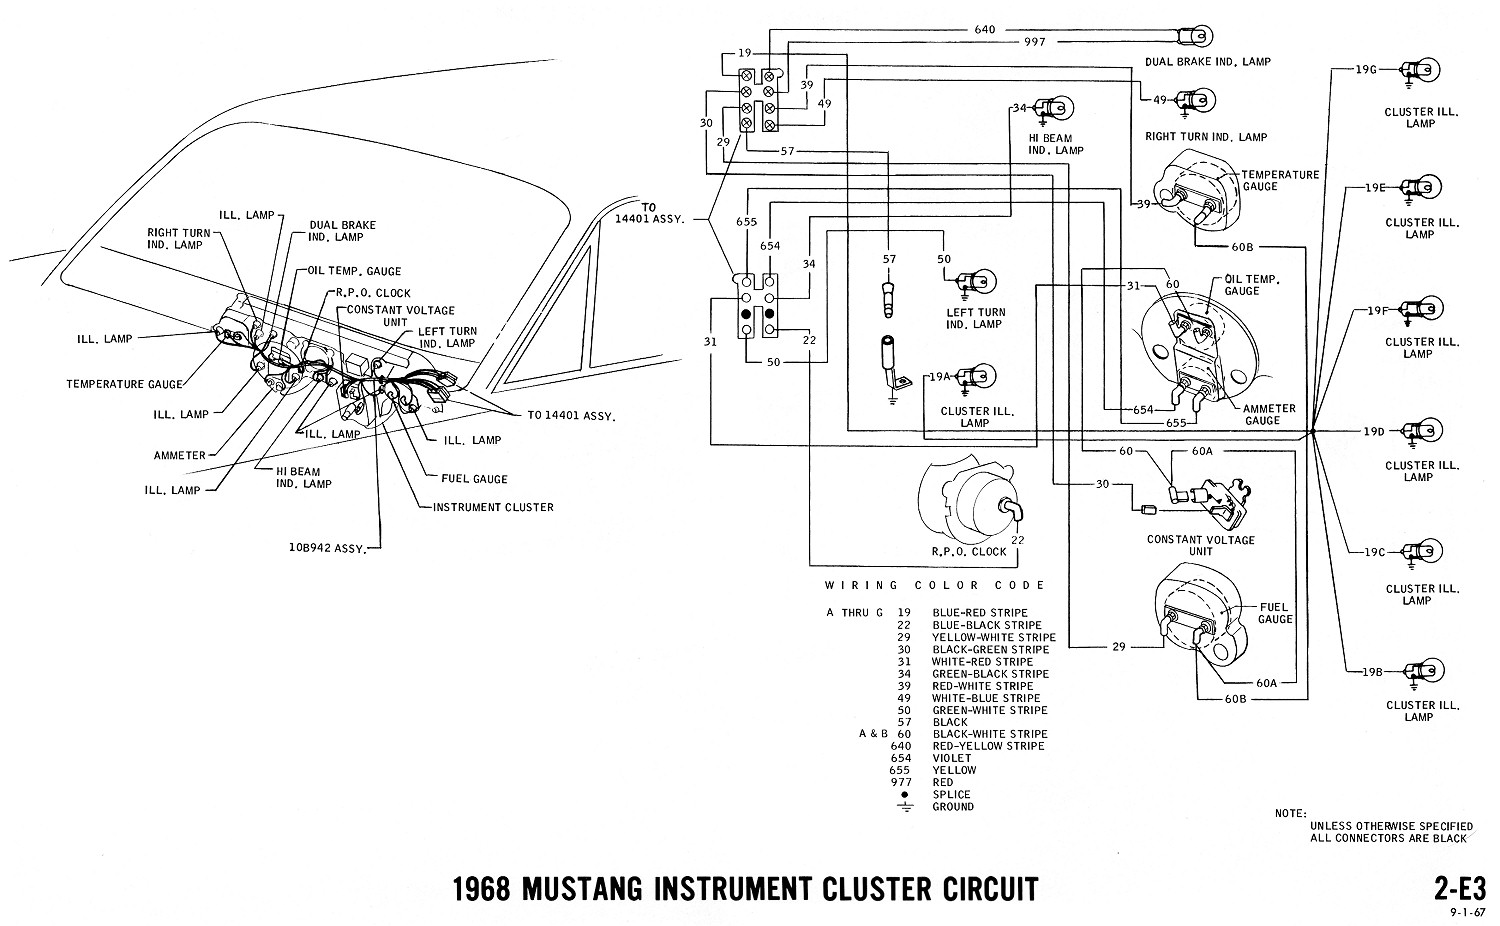 E3 1968 mustang wiring diagrams evolving software instrument cluster wiring diagram at eliteediting.co